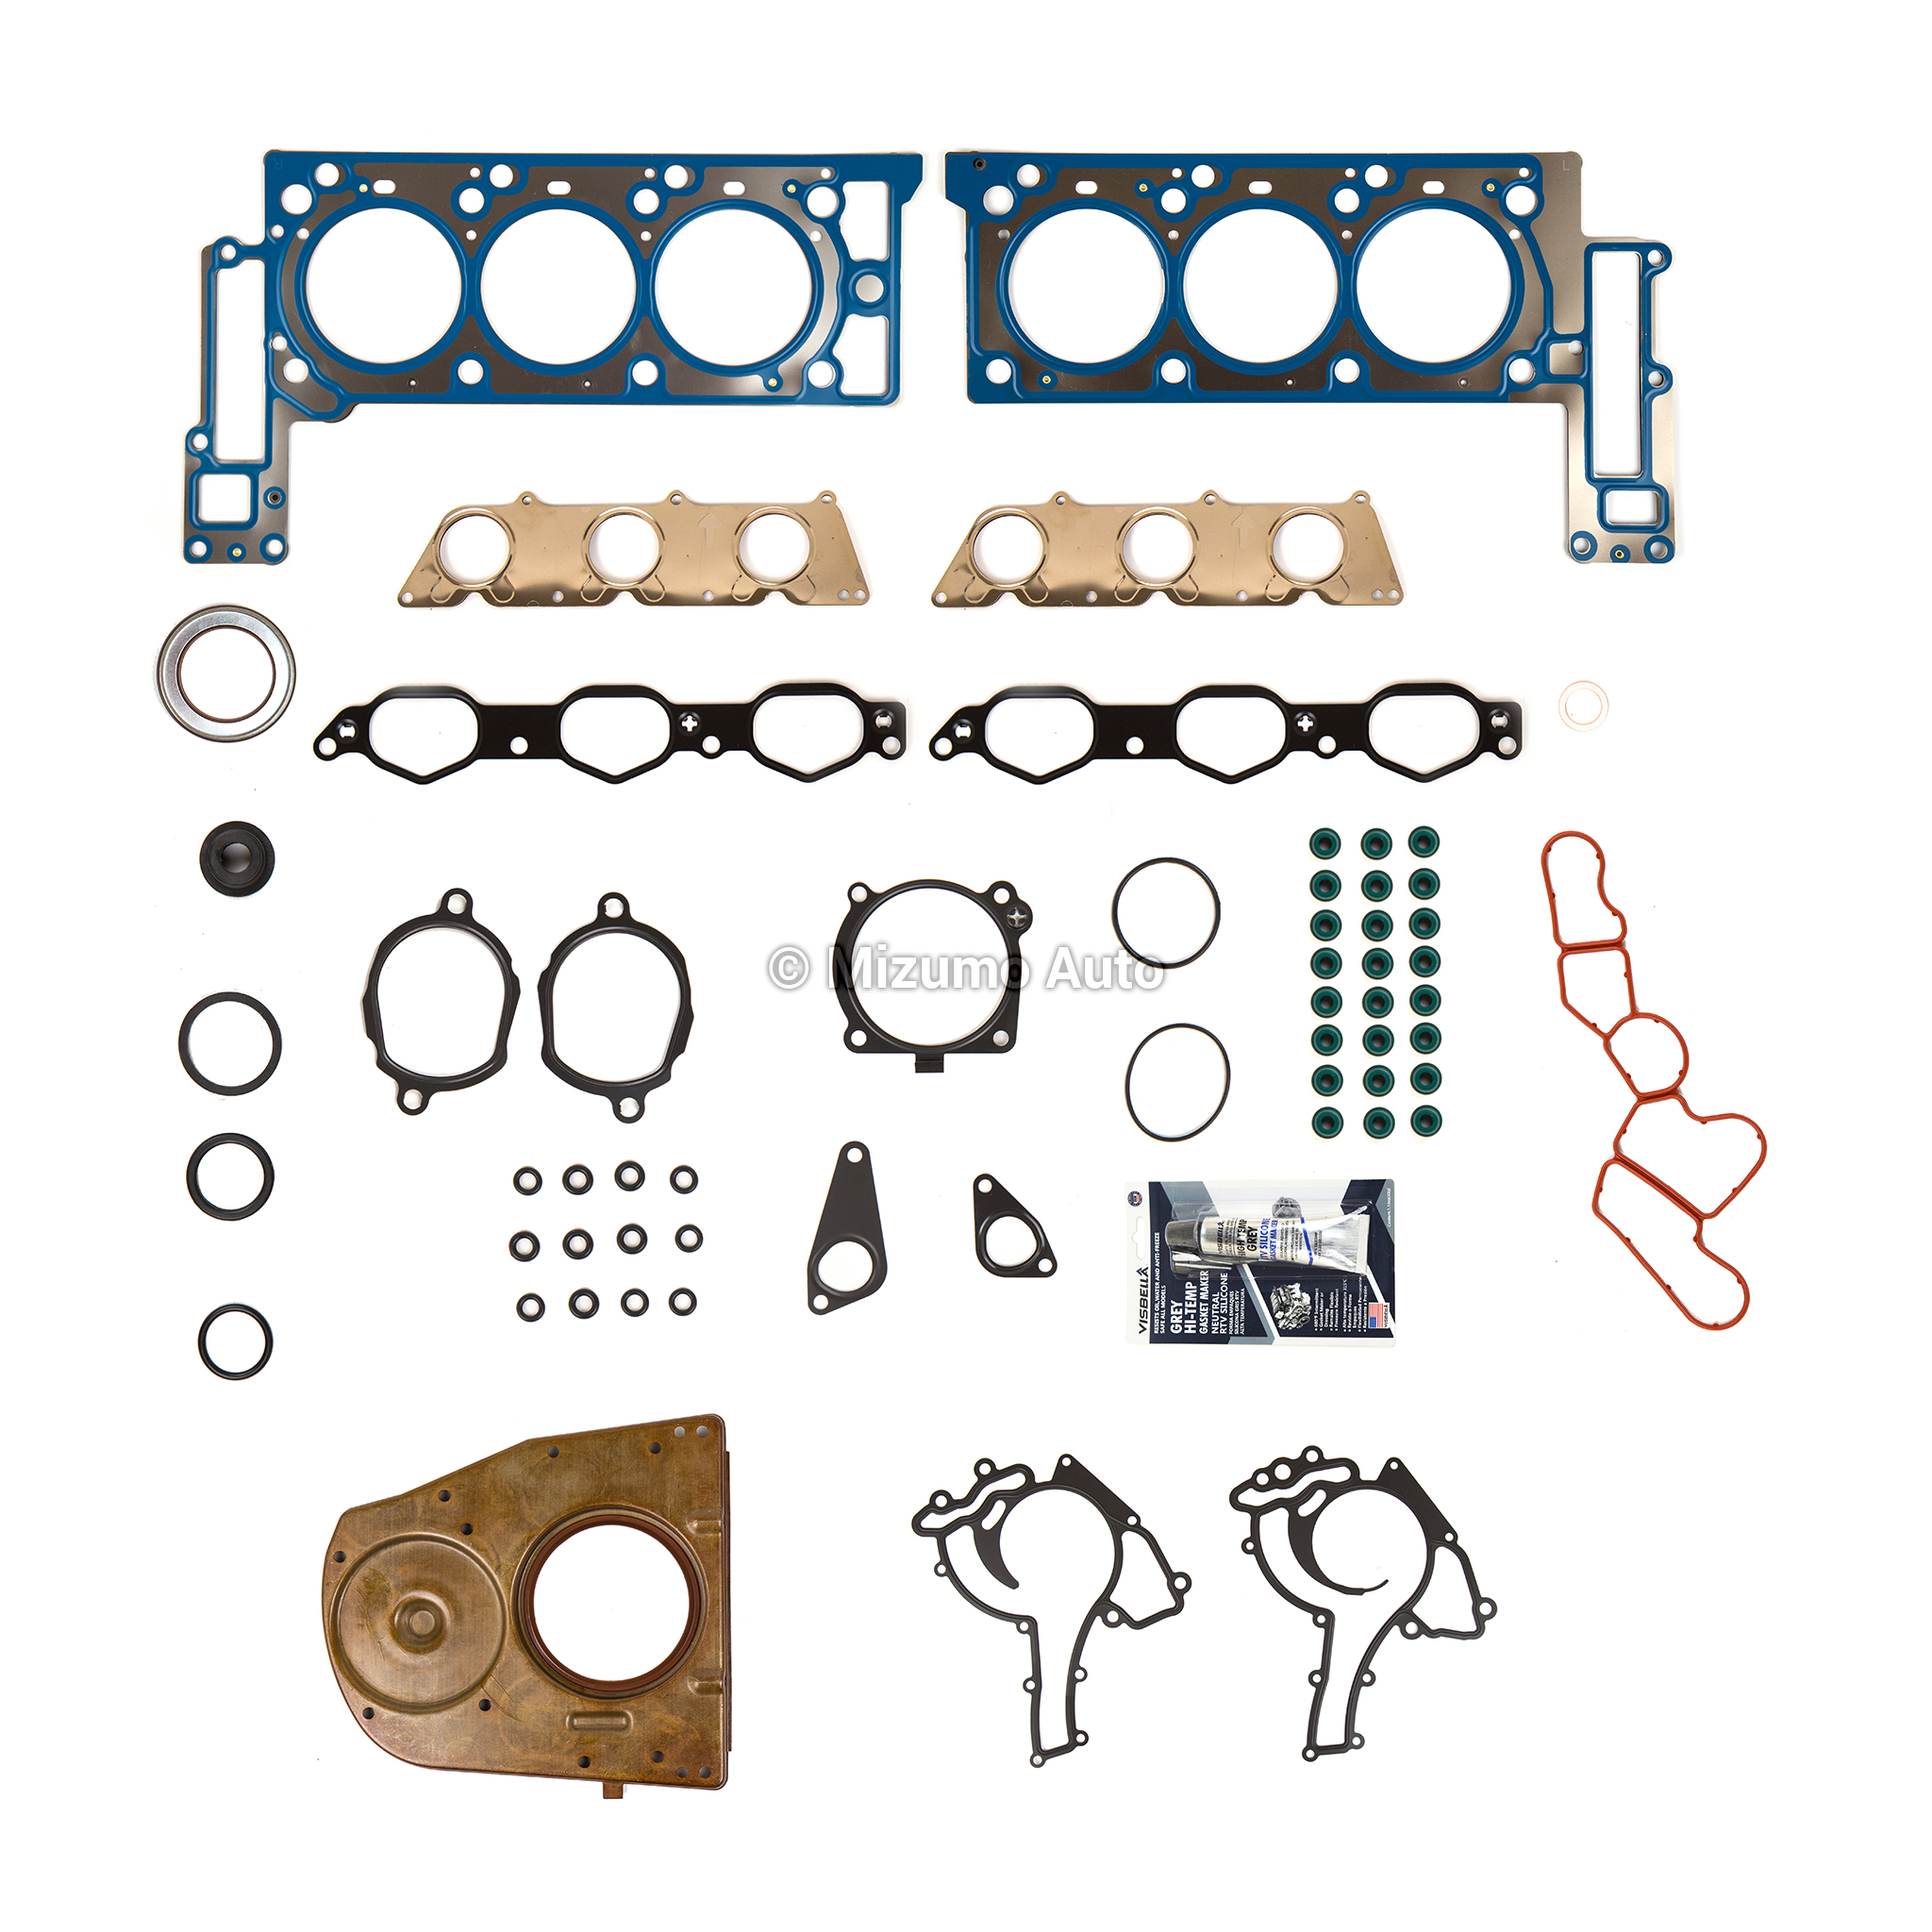 Full Gasket Set Fit 05-13 Mercedes E350 C350 R350 ML350 3.5L DOHC